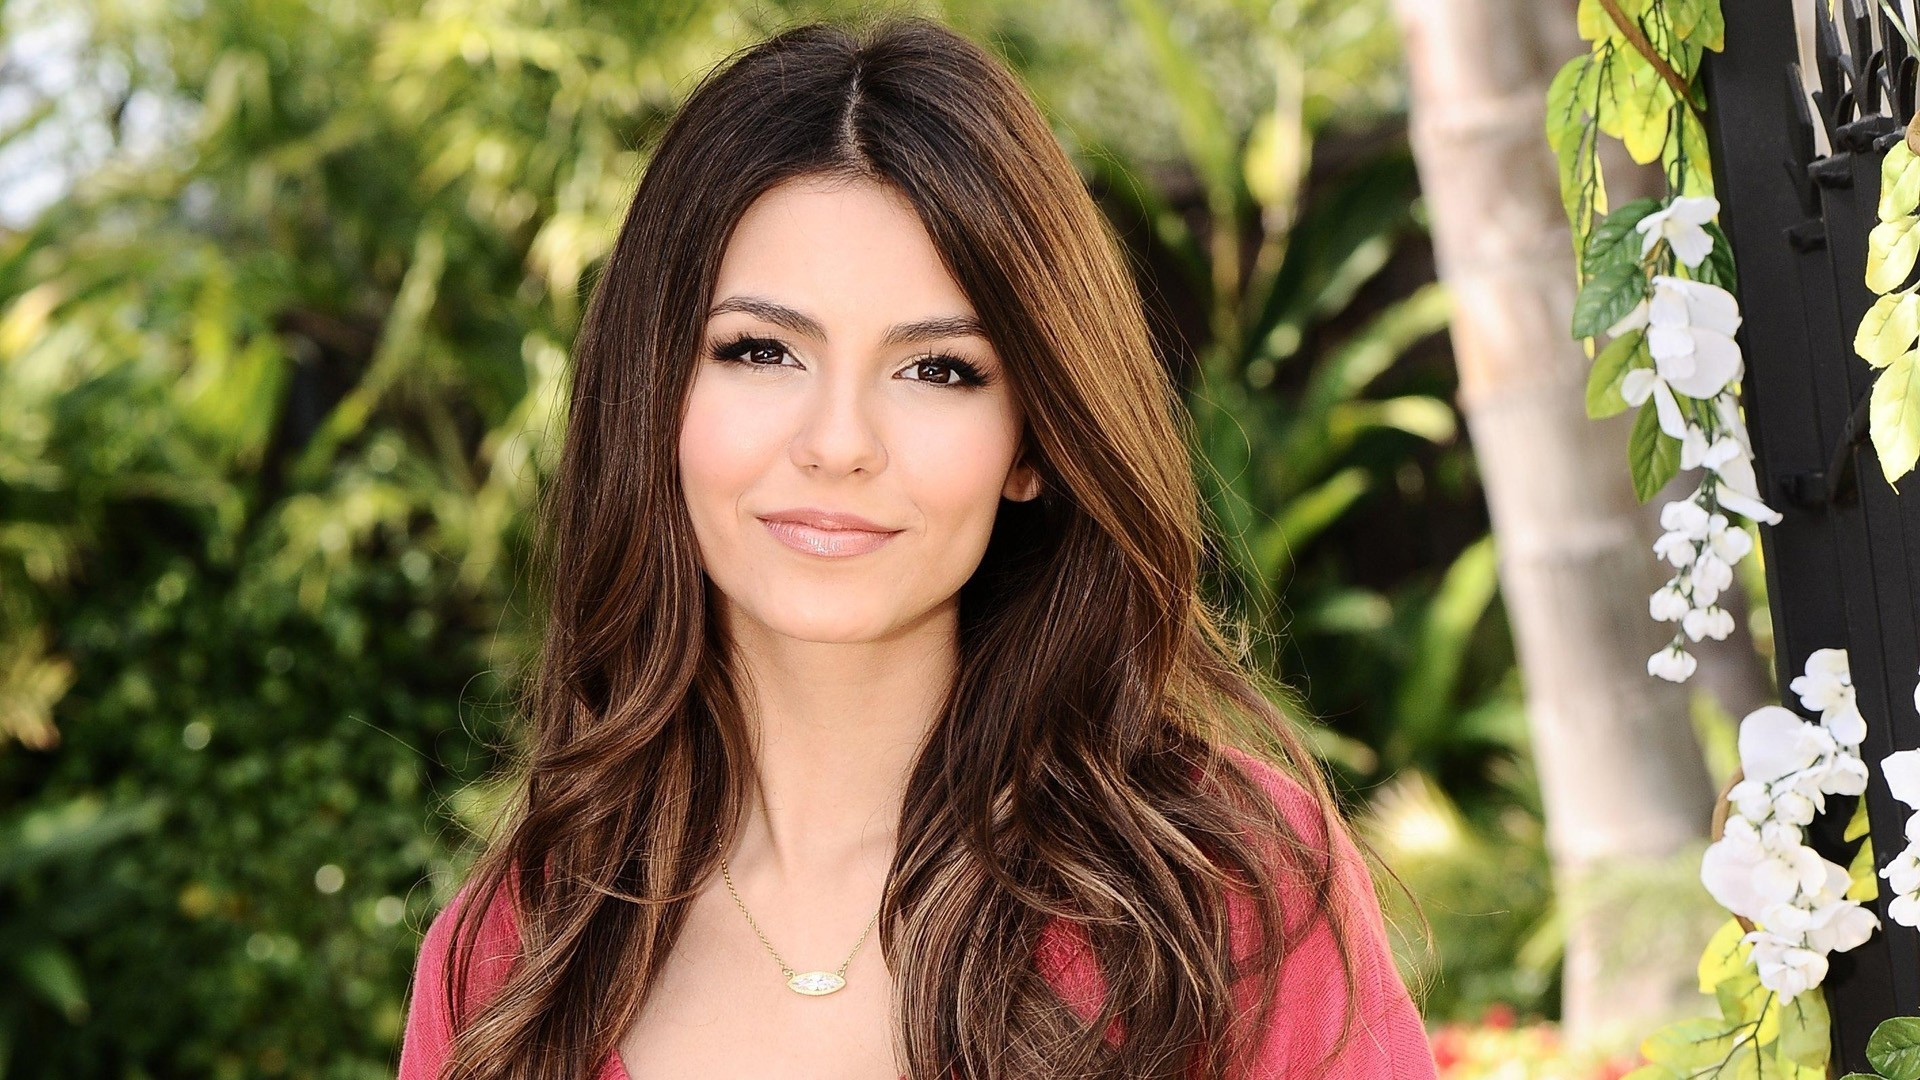 lovely victoria justice nice pose background mobile free hd desktop photos